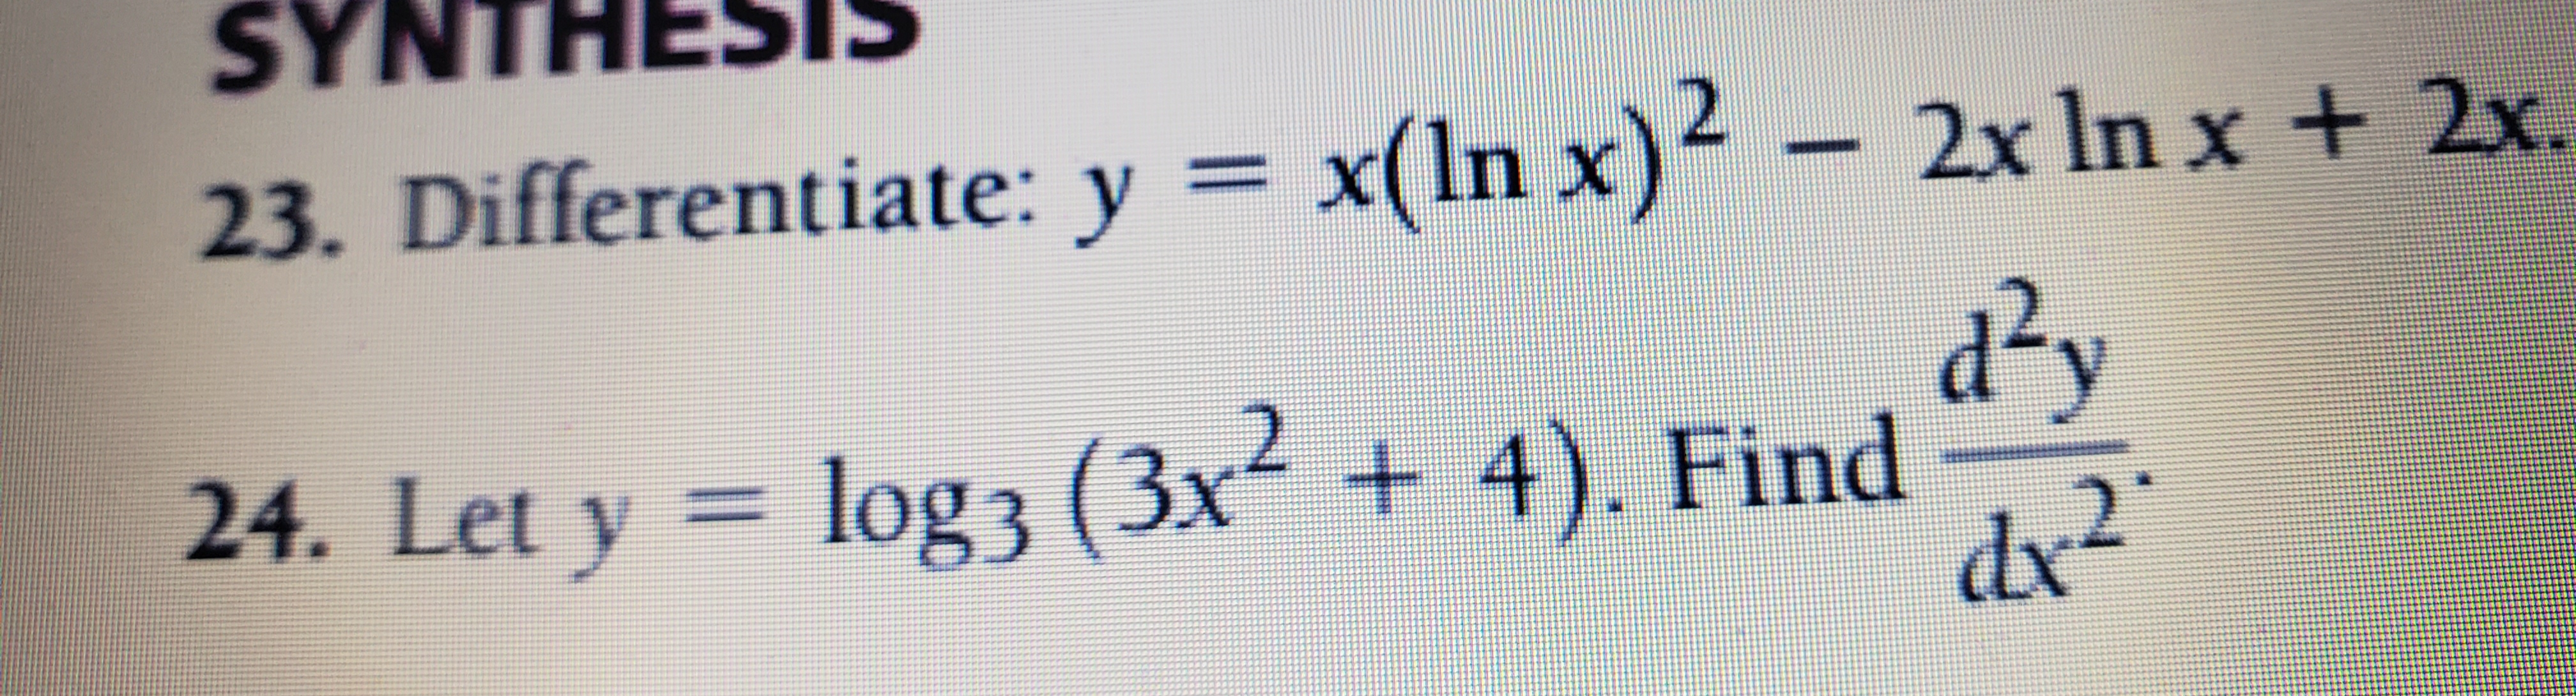 SYNTHESIS 23. Differentiate: y = x(ln x)² – 2x In x + 2x. %3D d²y log 3 (3x² + 4). Find dx 24. Let y = 2.